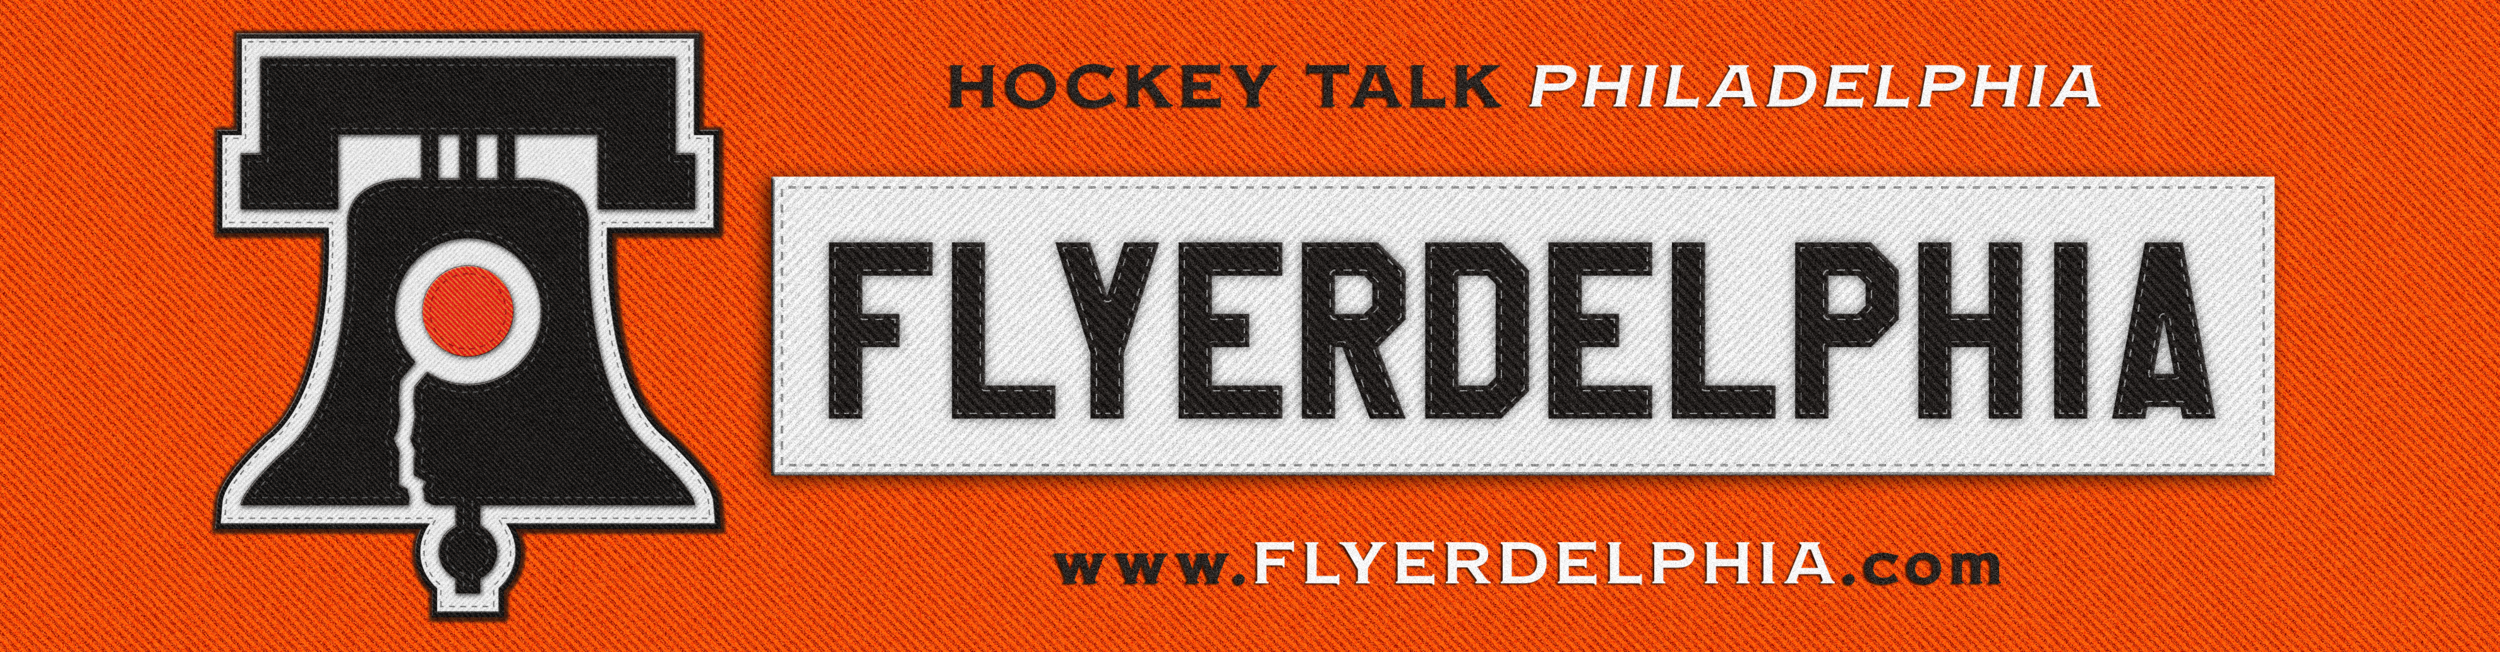 Flyerdelphia logos show The Liberty Bell with the team's iconic colored circles in the center. The team's iconic white nameplate also is shoed to display Flyerdelphia.